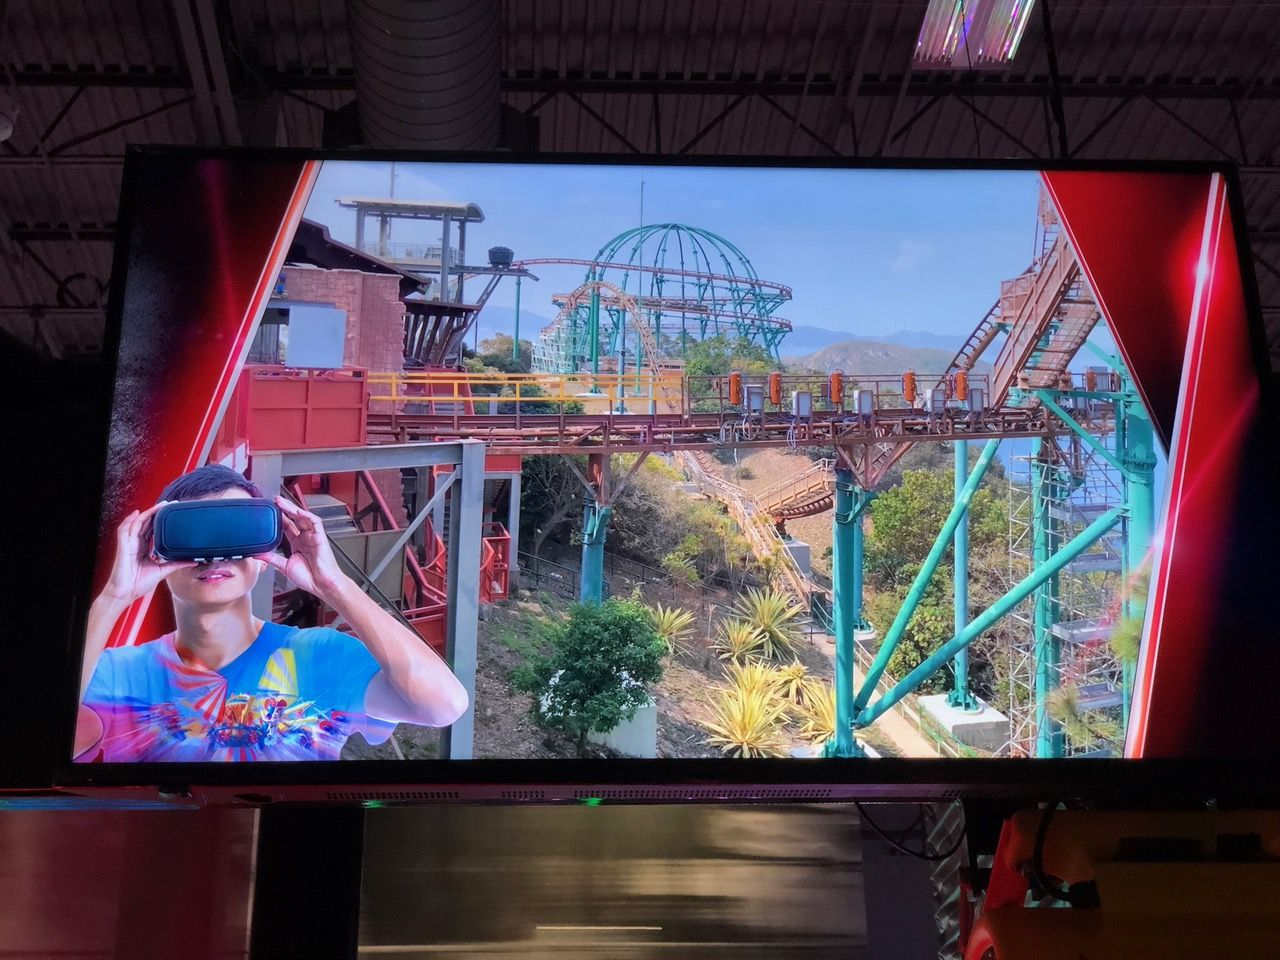 Andretti Indoor Karting & Games Unveils New VR Roller